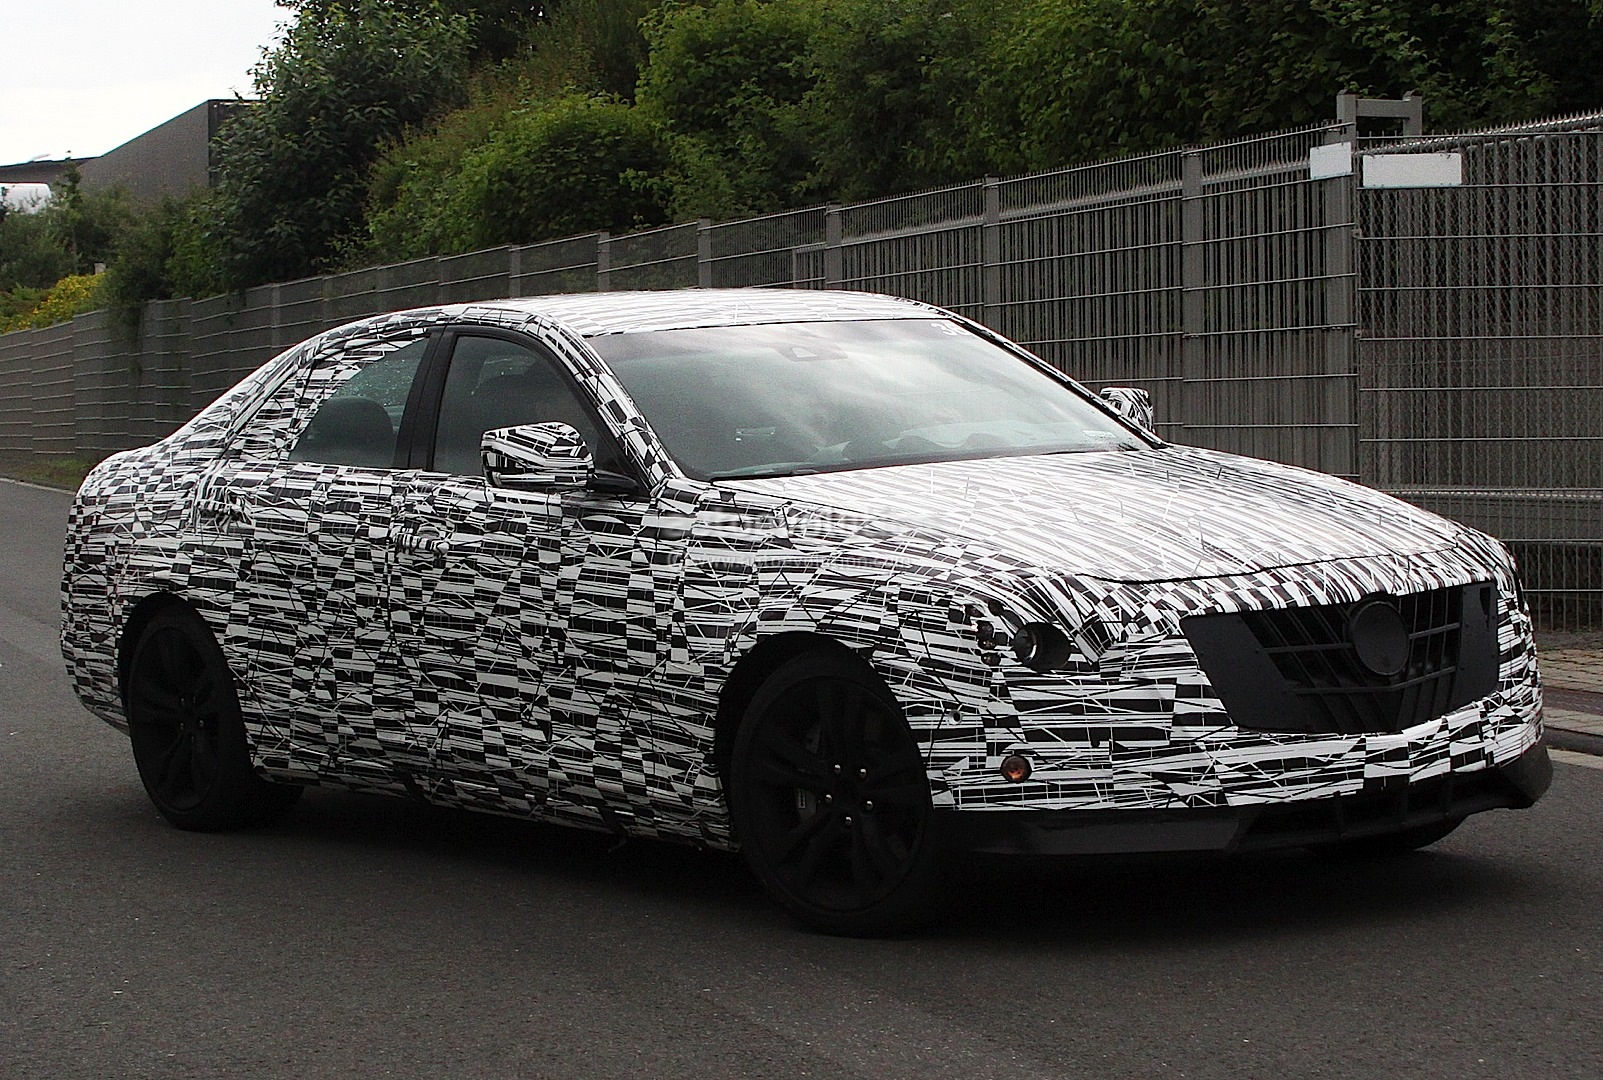 Spyshots 2014 Cadillac CTS Away Wallpapers HD